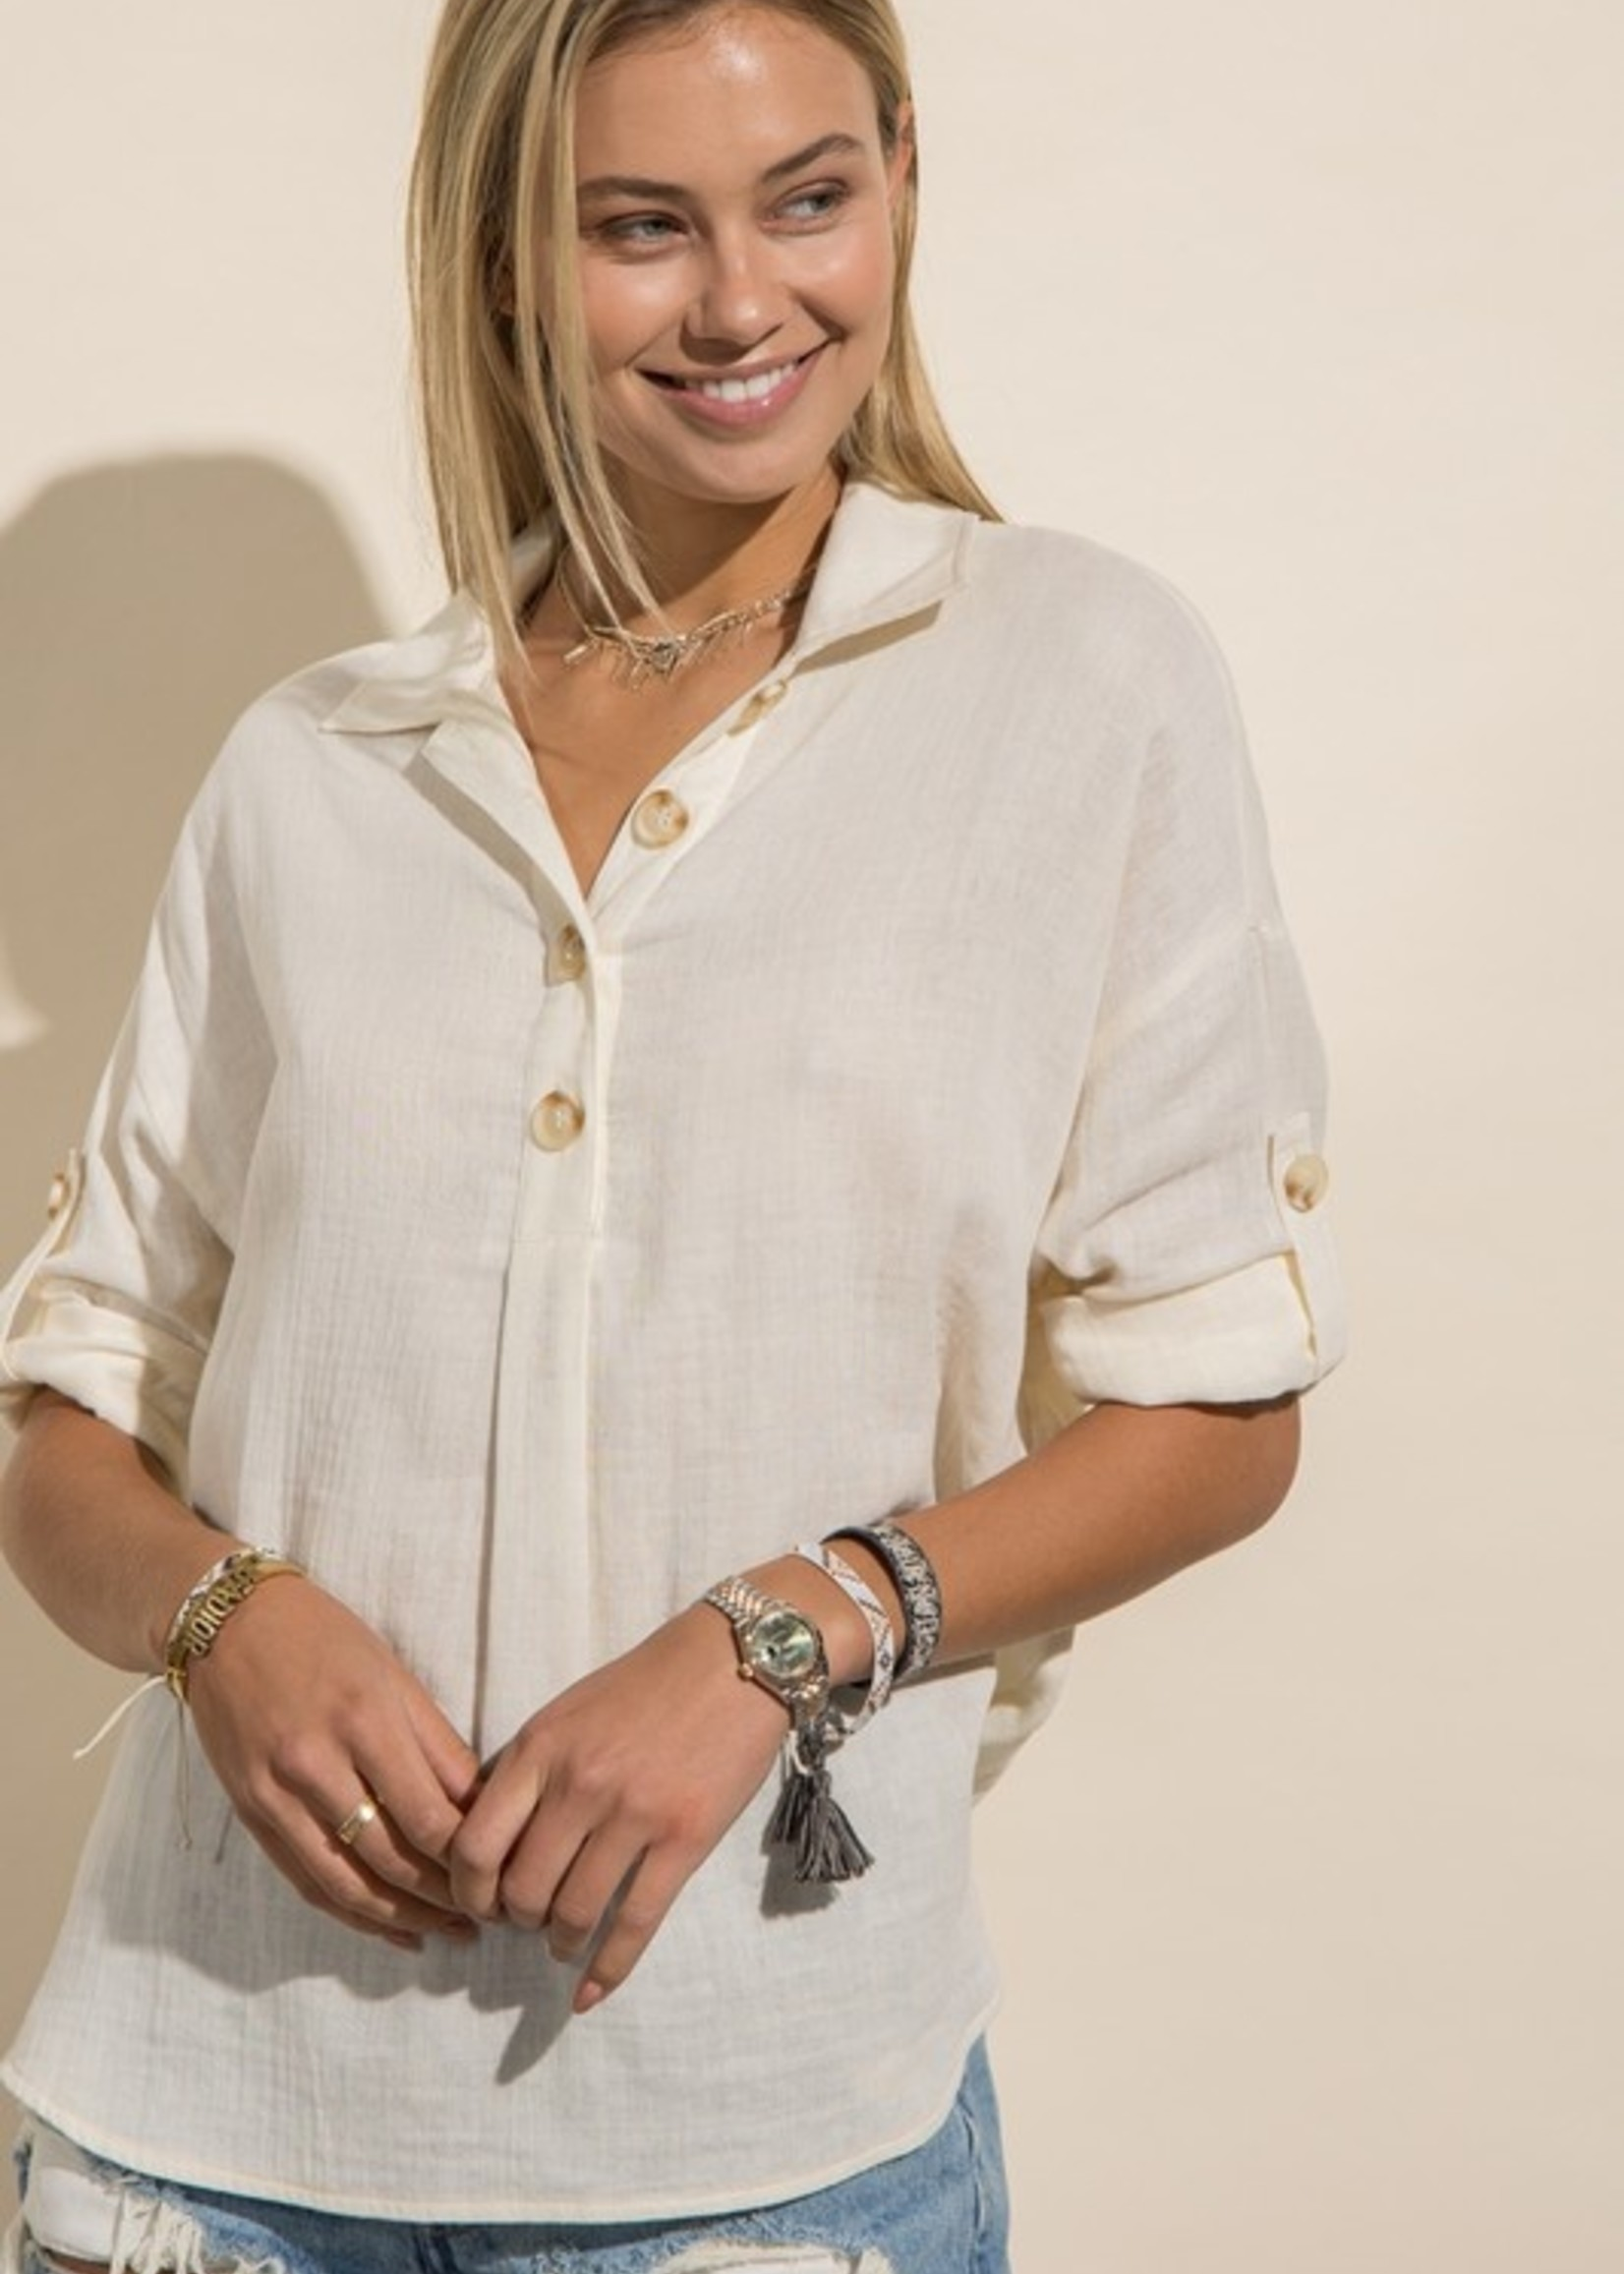 Cotton Shirt with Buttons - Off White